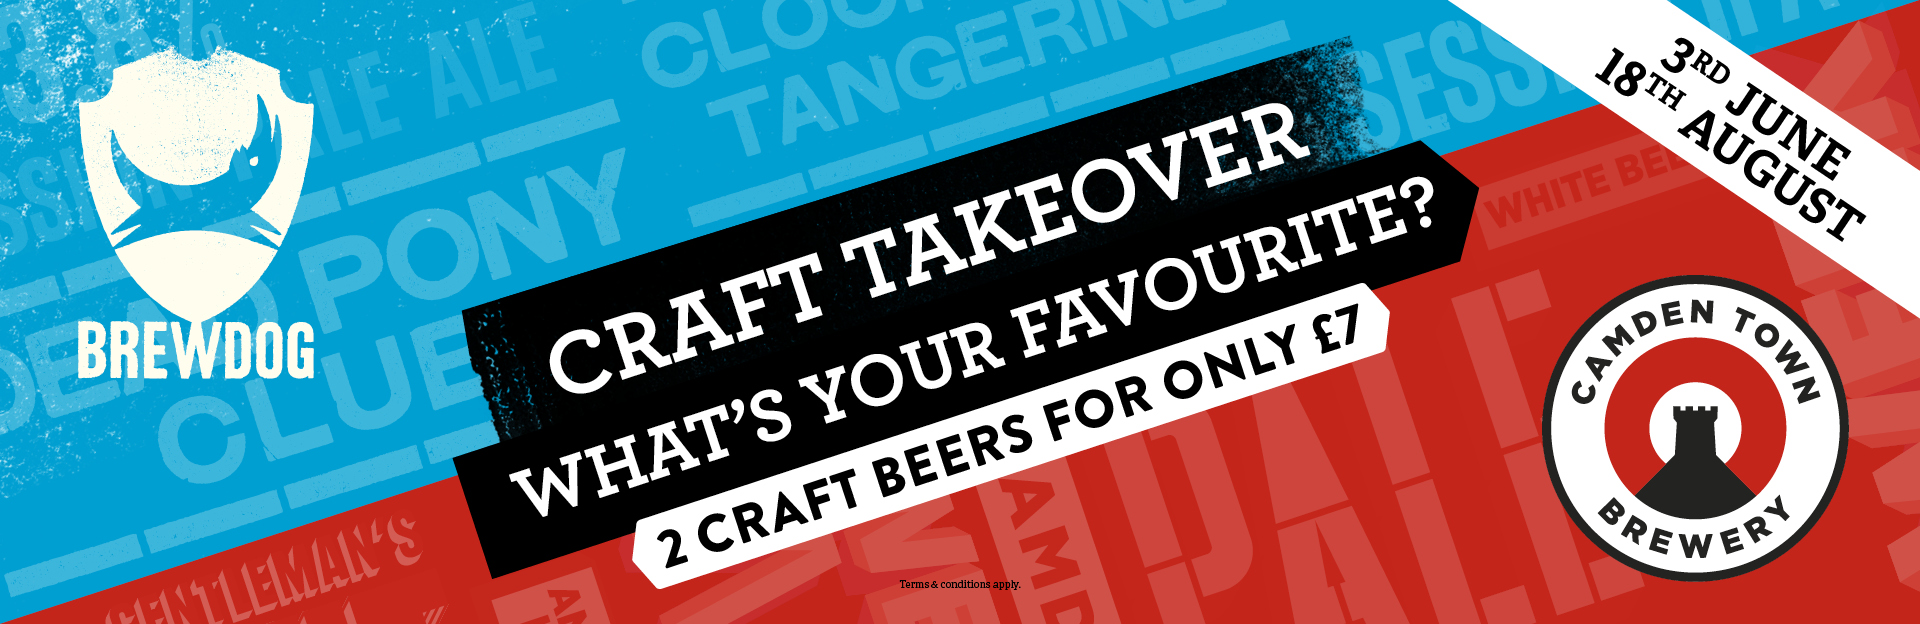 Craft Takeover at The Trocadero